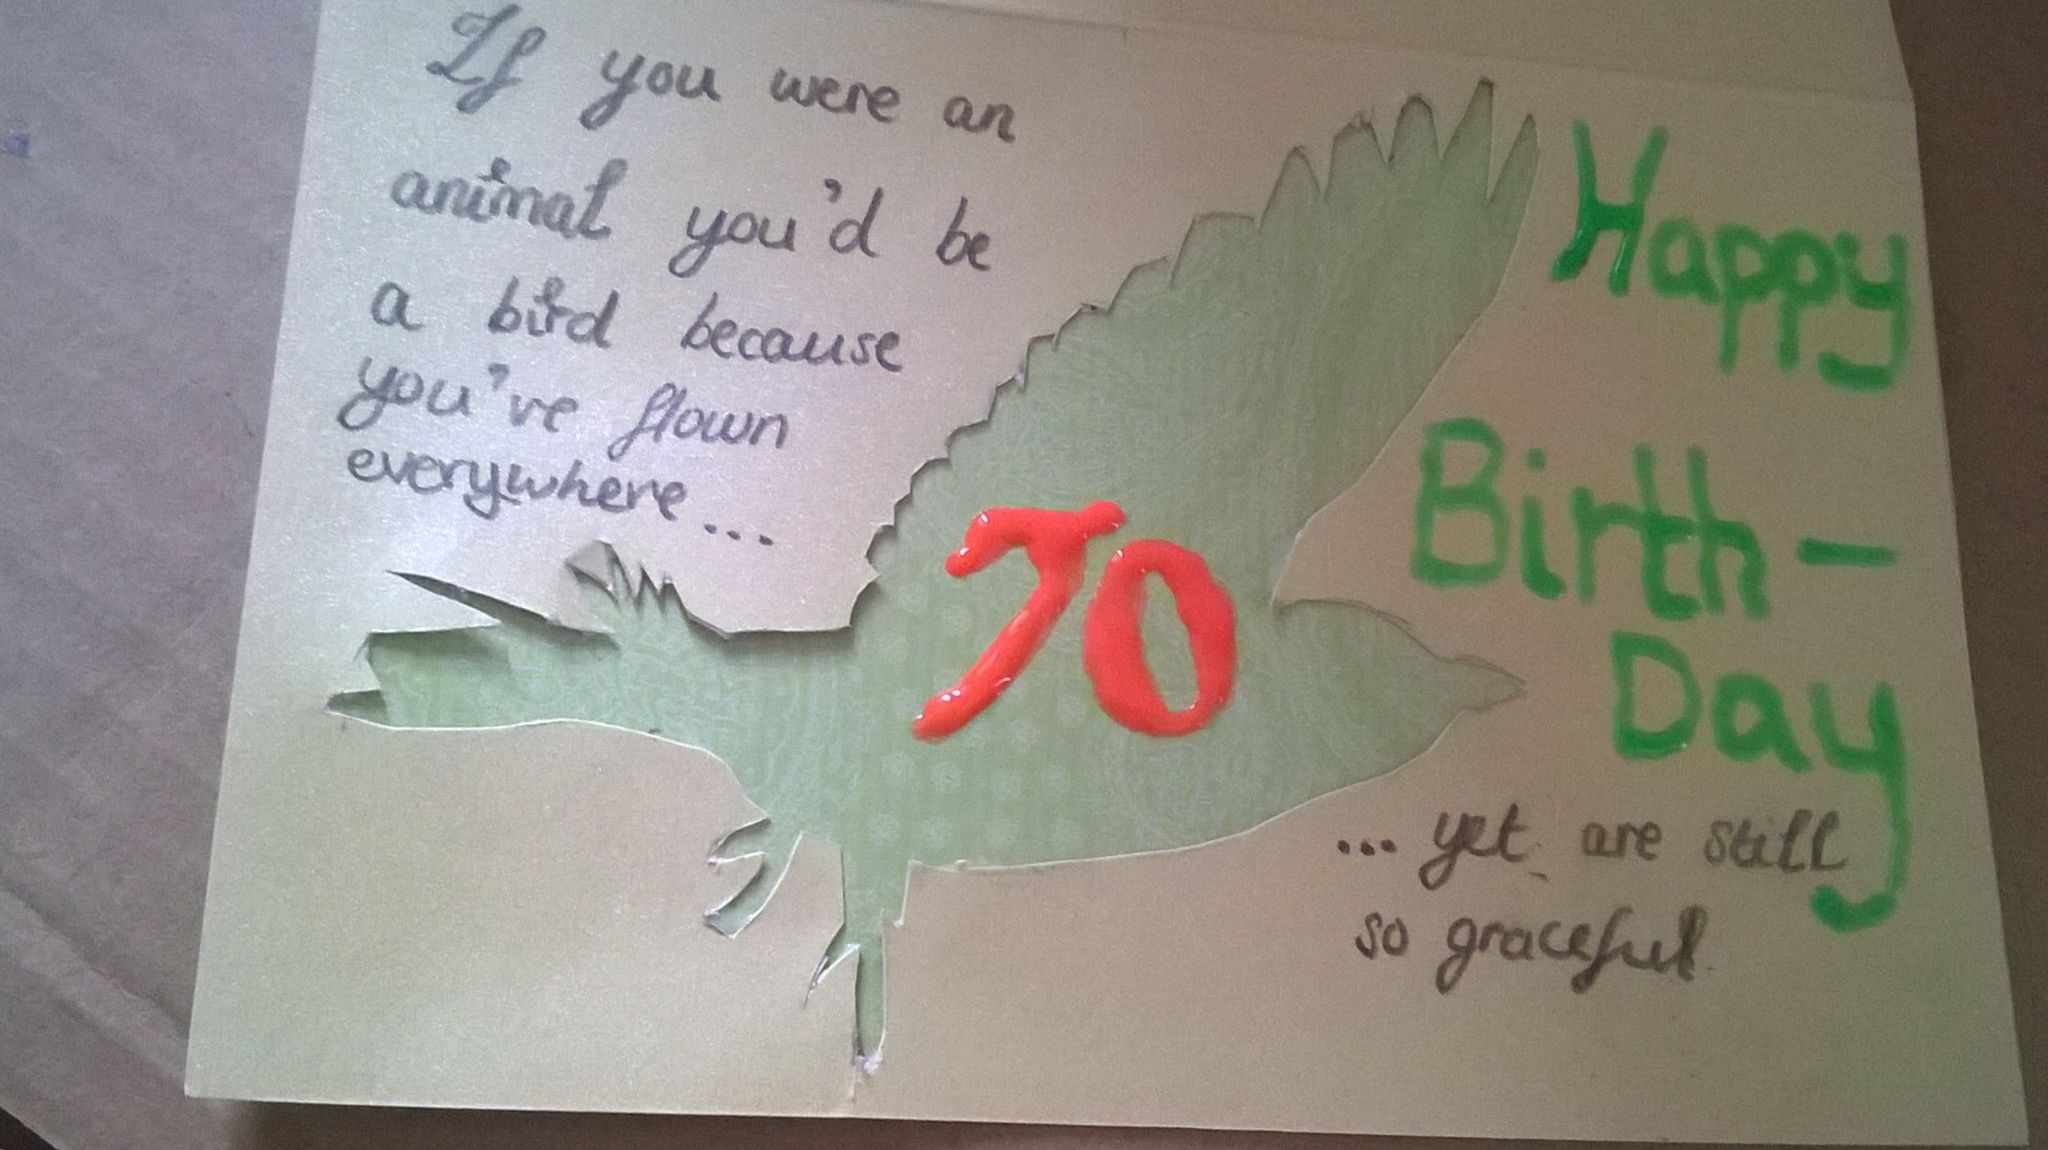 Birthday Card For 70th Birthday If You Were An Animal You D Be A